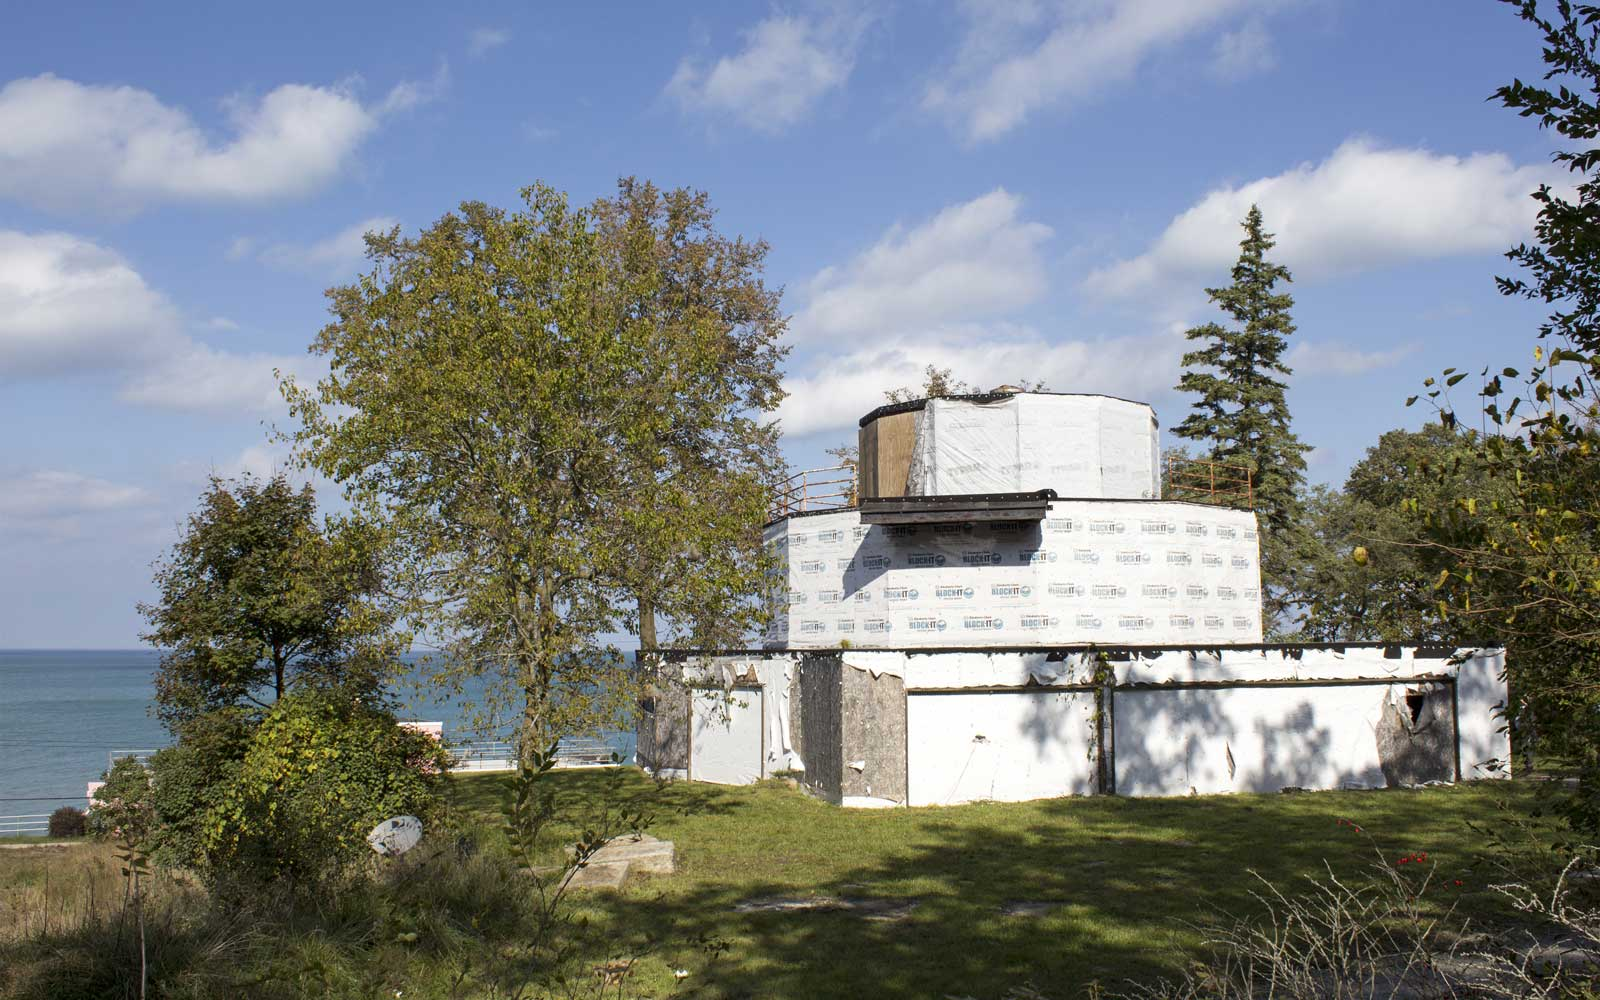 Live in Indiana Dunes National Park 'House of Tomorrow' Rent Free